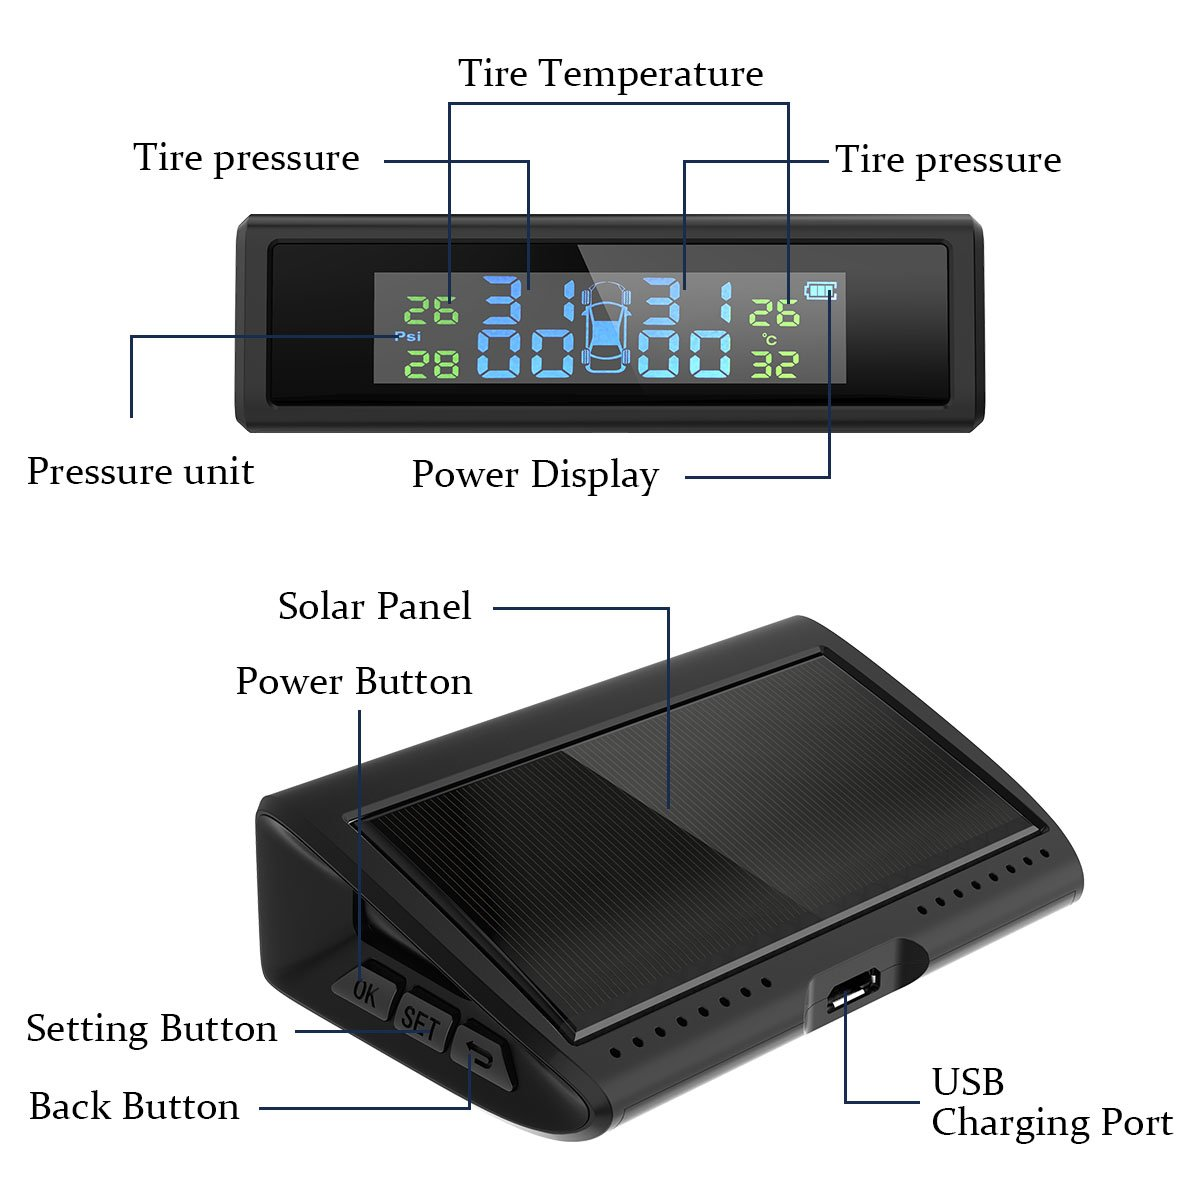 HiGoing Tire Pressure Monitoring System, Solar Wireless TPMS Built-in 450mAh Battery, 4 External Sensors (0-8.0 Bar/0-116 Psi, 49-85℉/65-85℃), 6 Alarms Real-time High Monitor Temperature & Pressure by HiGoing (Image #2)